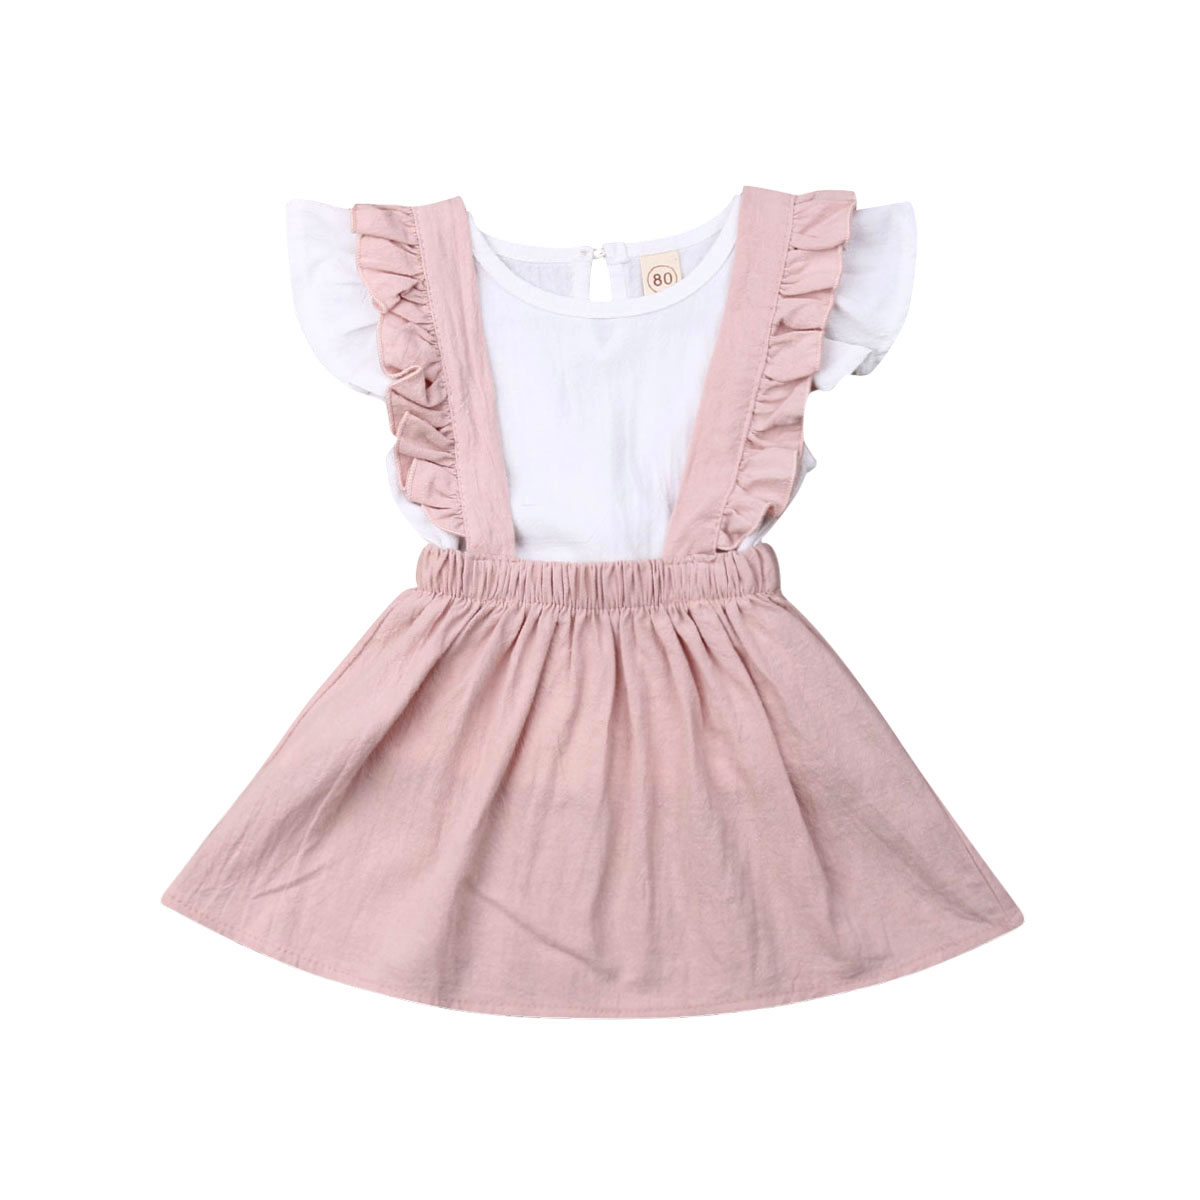 Pudcoco Toddler Kids Baby Girls Summer Cute Clothes Ruffle T-shirt Tops <font><b>Bibs</b></font> <font><b>Skirt</b></font> 2Pcs Kds Princess Outfits Set Holiday Clothes image